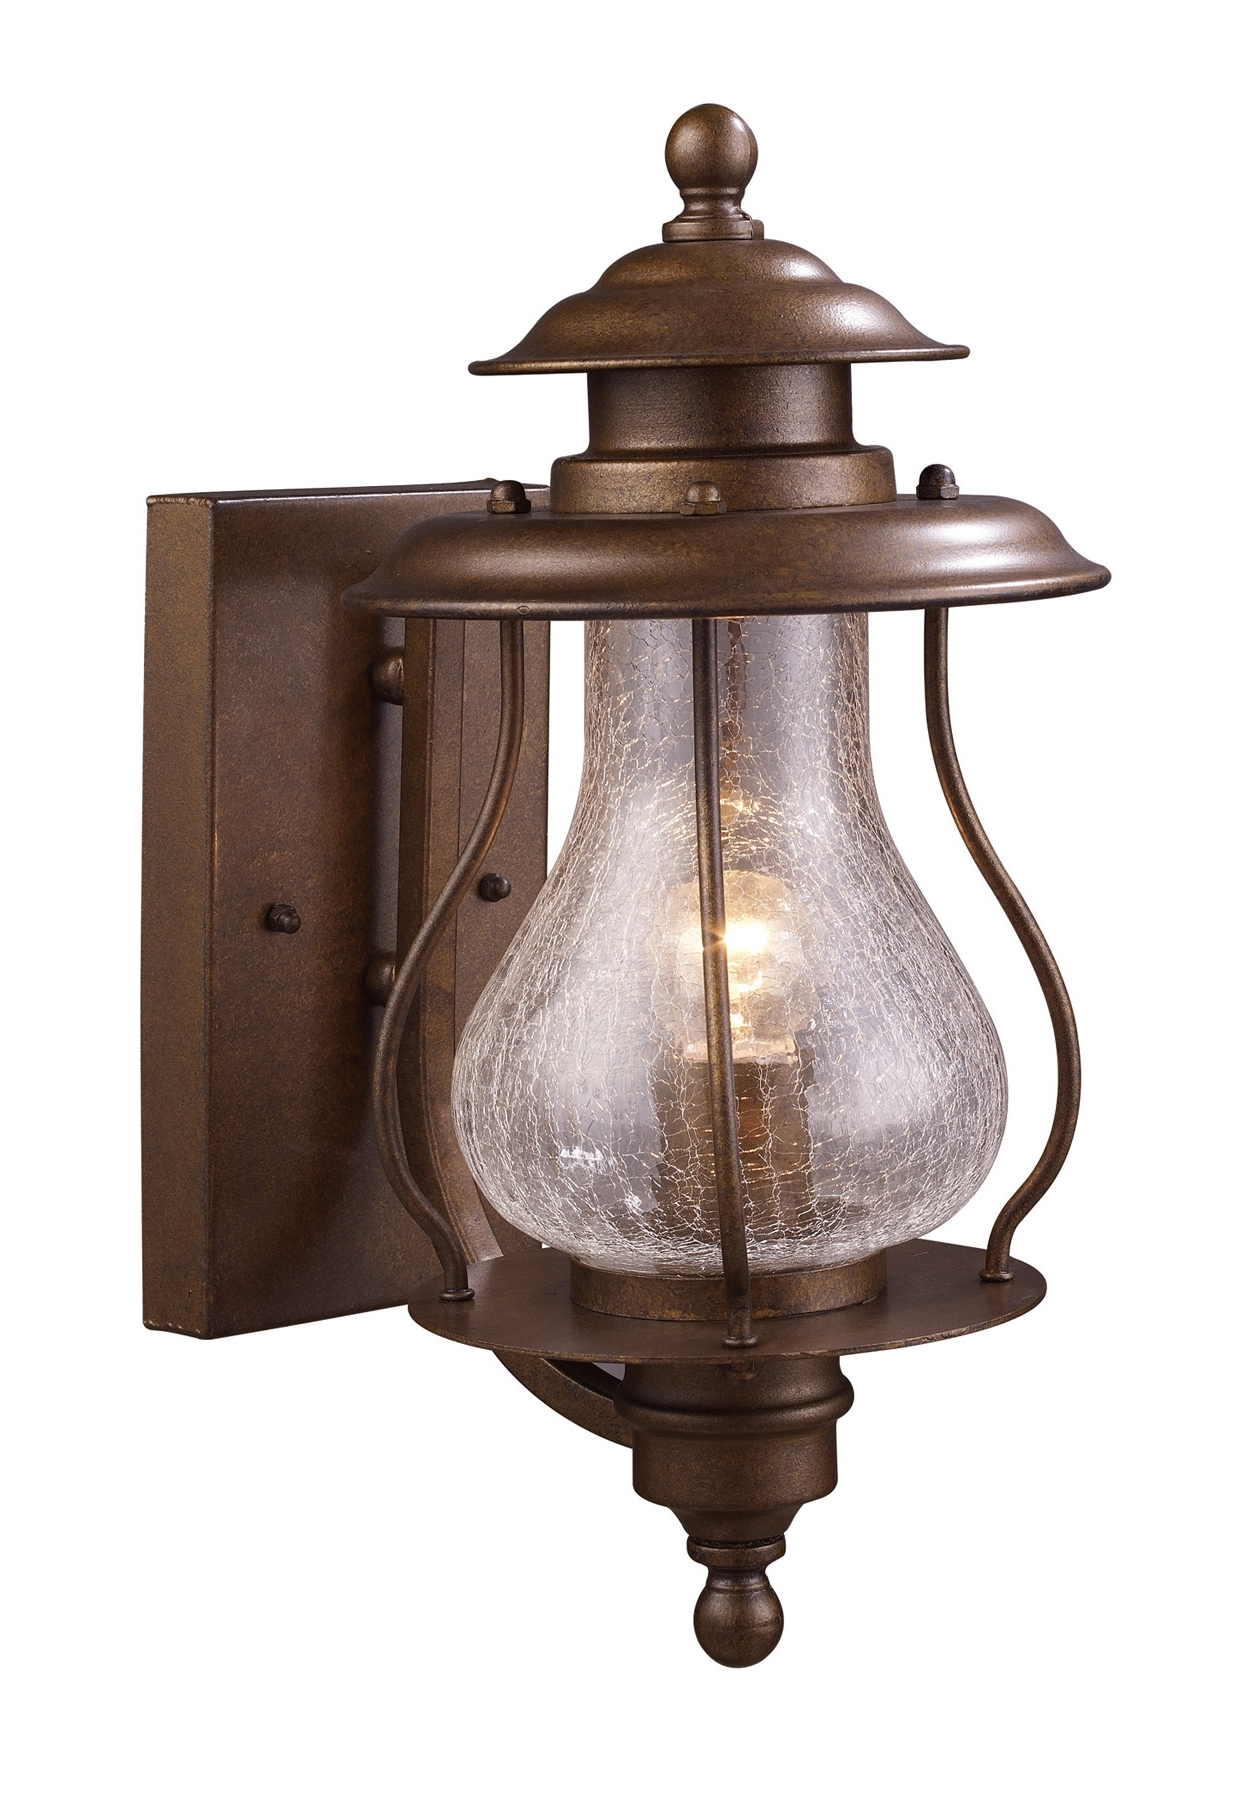 Favorite Lighting Design Ideas: Led Kichler Outdoor Wall Mount Lighting In Quality Outdoor Lanterns (Gallery 1 of 20)